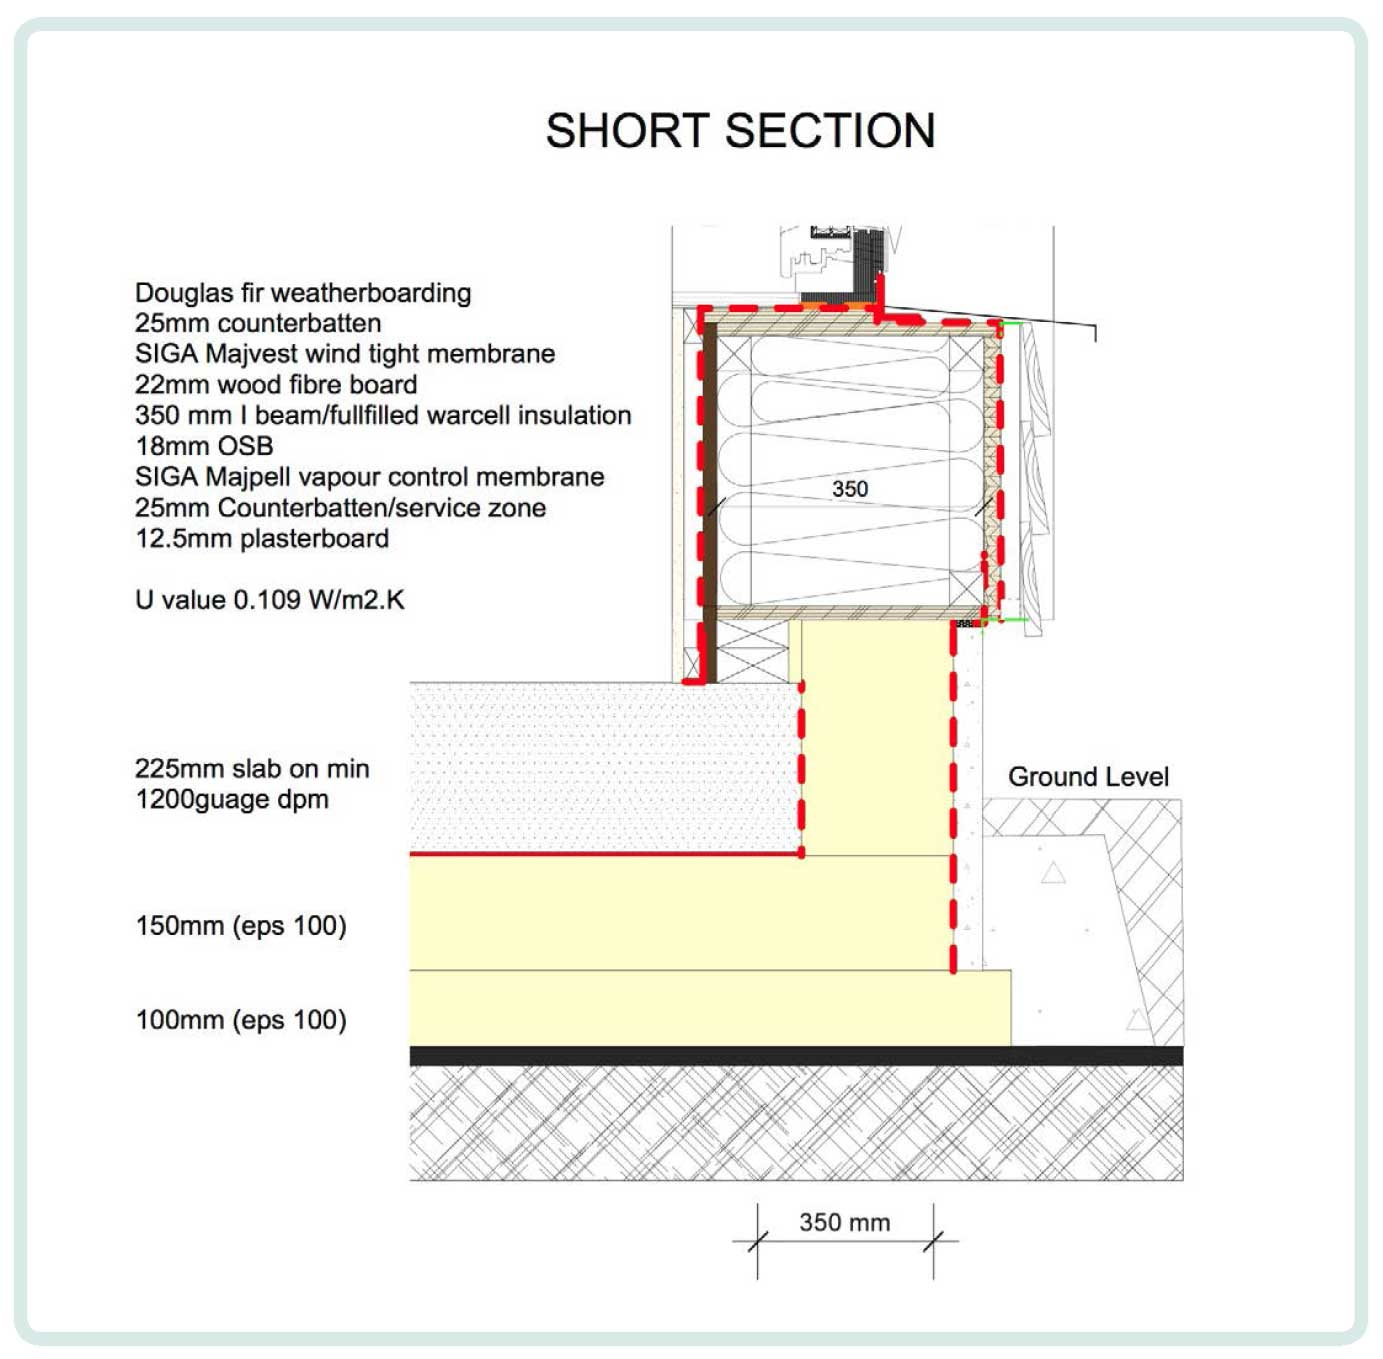 (above) Another easy-to-understand drawing, this time of a wall-to-floor junction, with the airtight and wind-tight layers marked clearly in red.